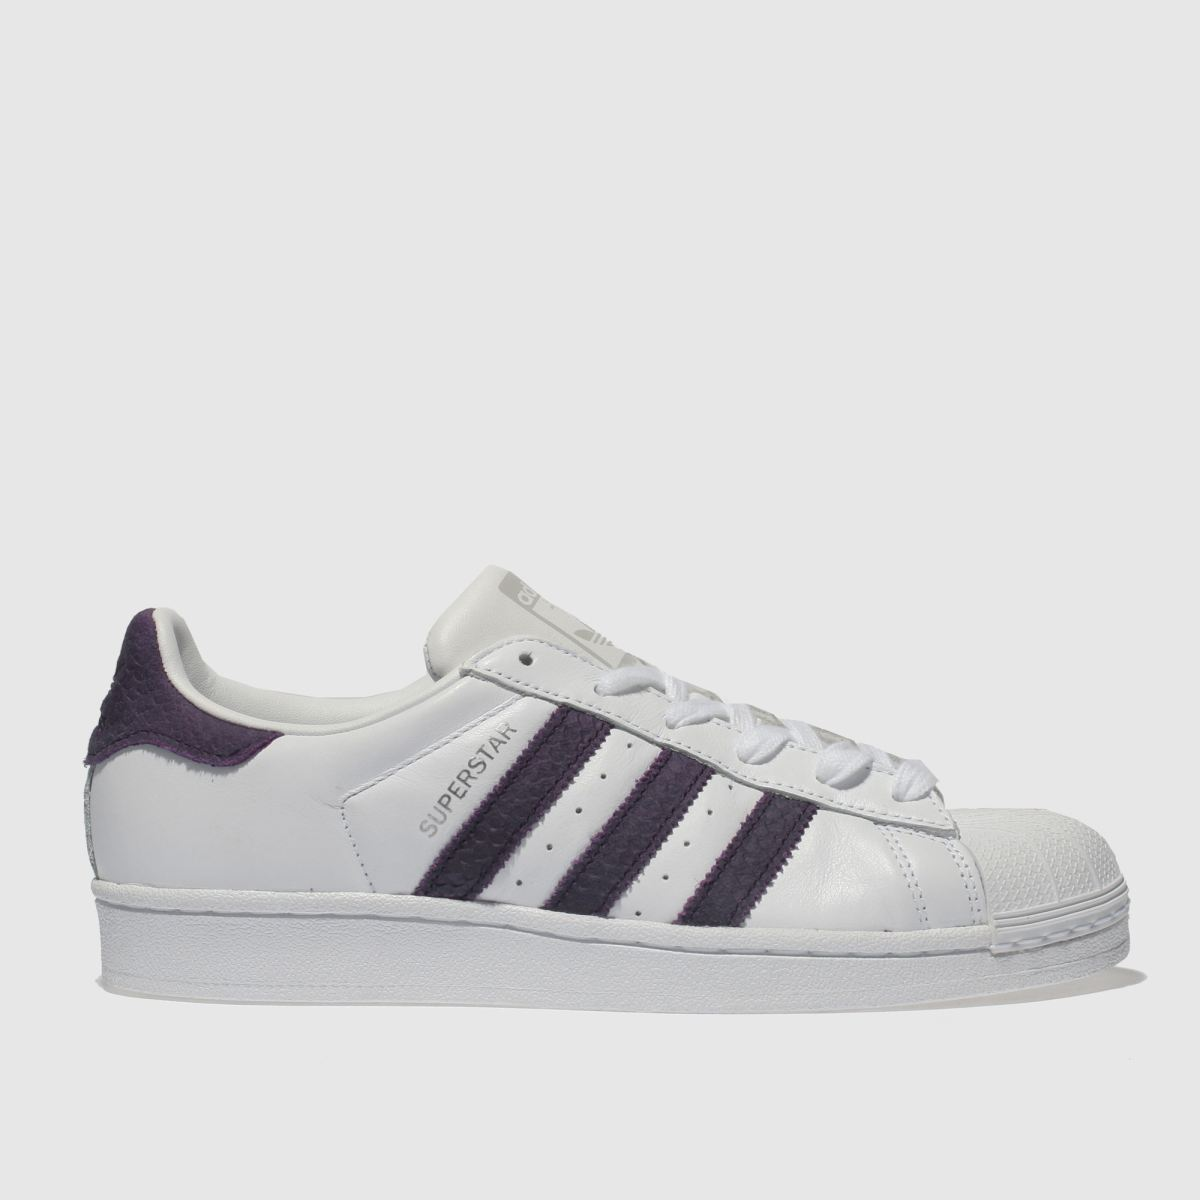 Adidas White & Purple Superstar Trainers